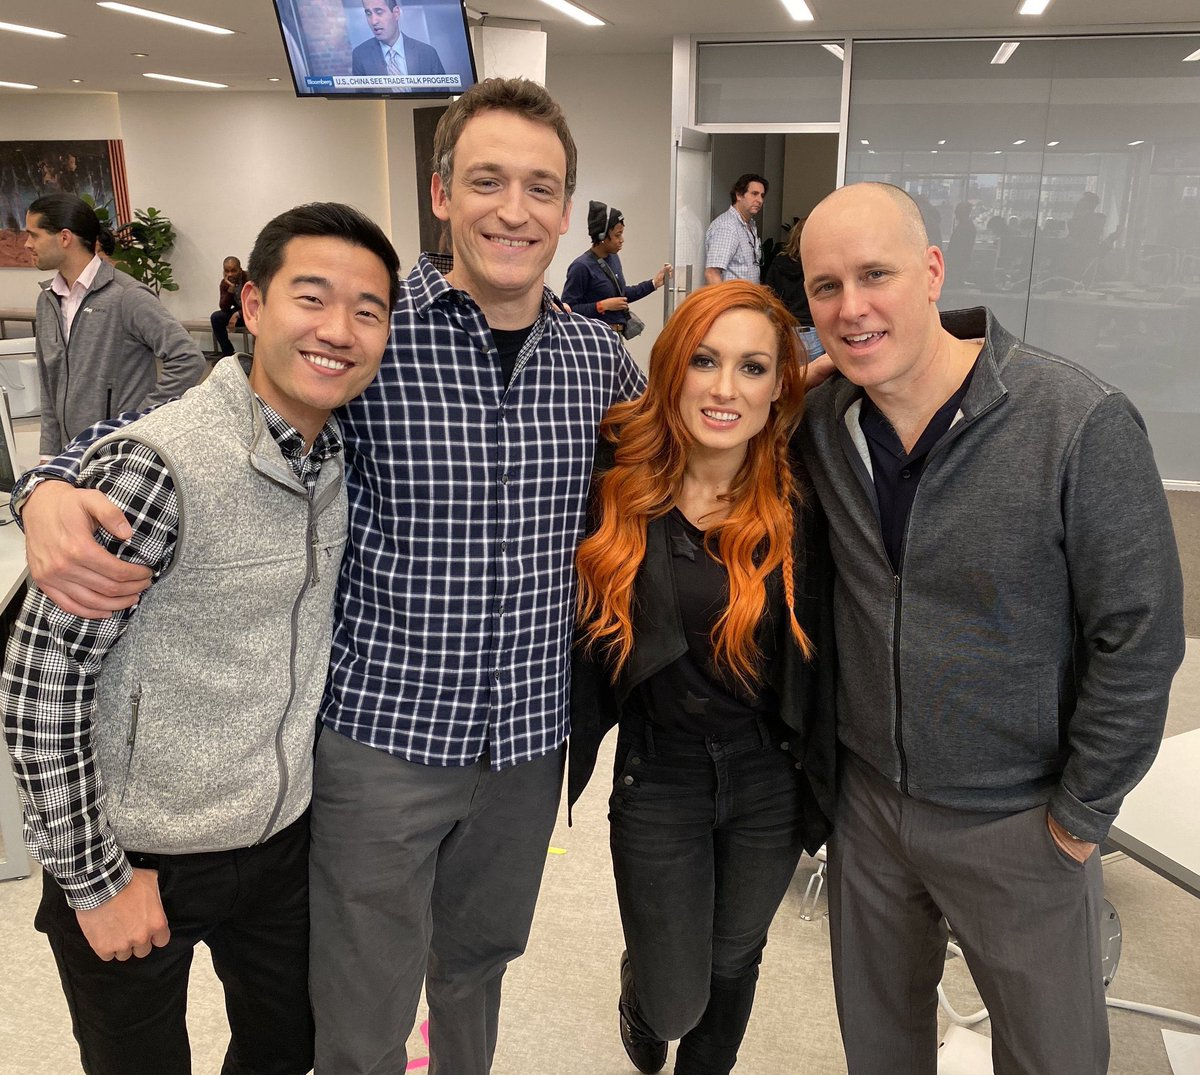 I can't tell you how much I enjoyed filming @SHO_Billions and working with such an incredible and talented cast and crew. #BeckyBillions https://t.co/mhkoqGM0sW